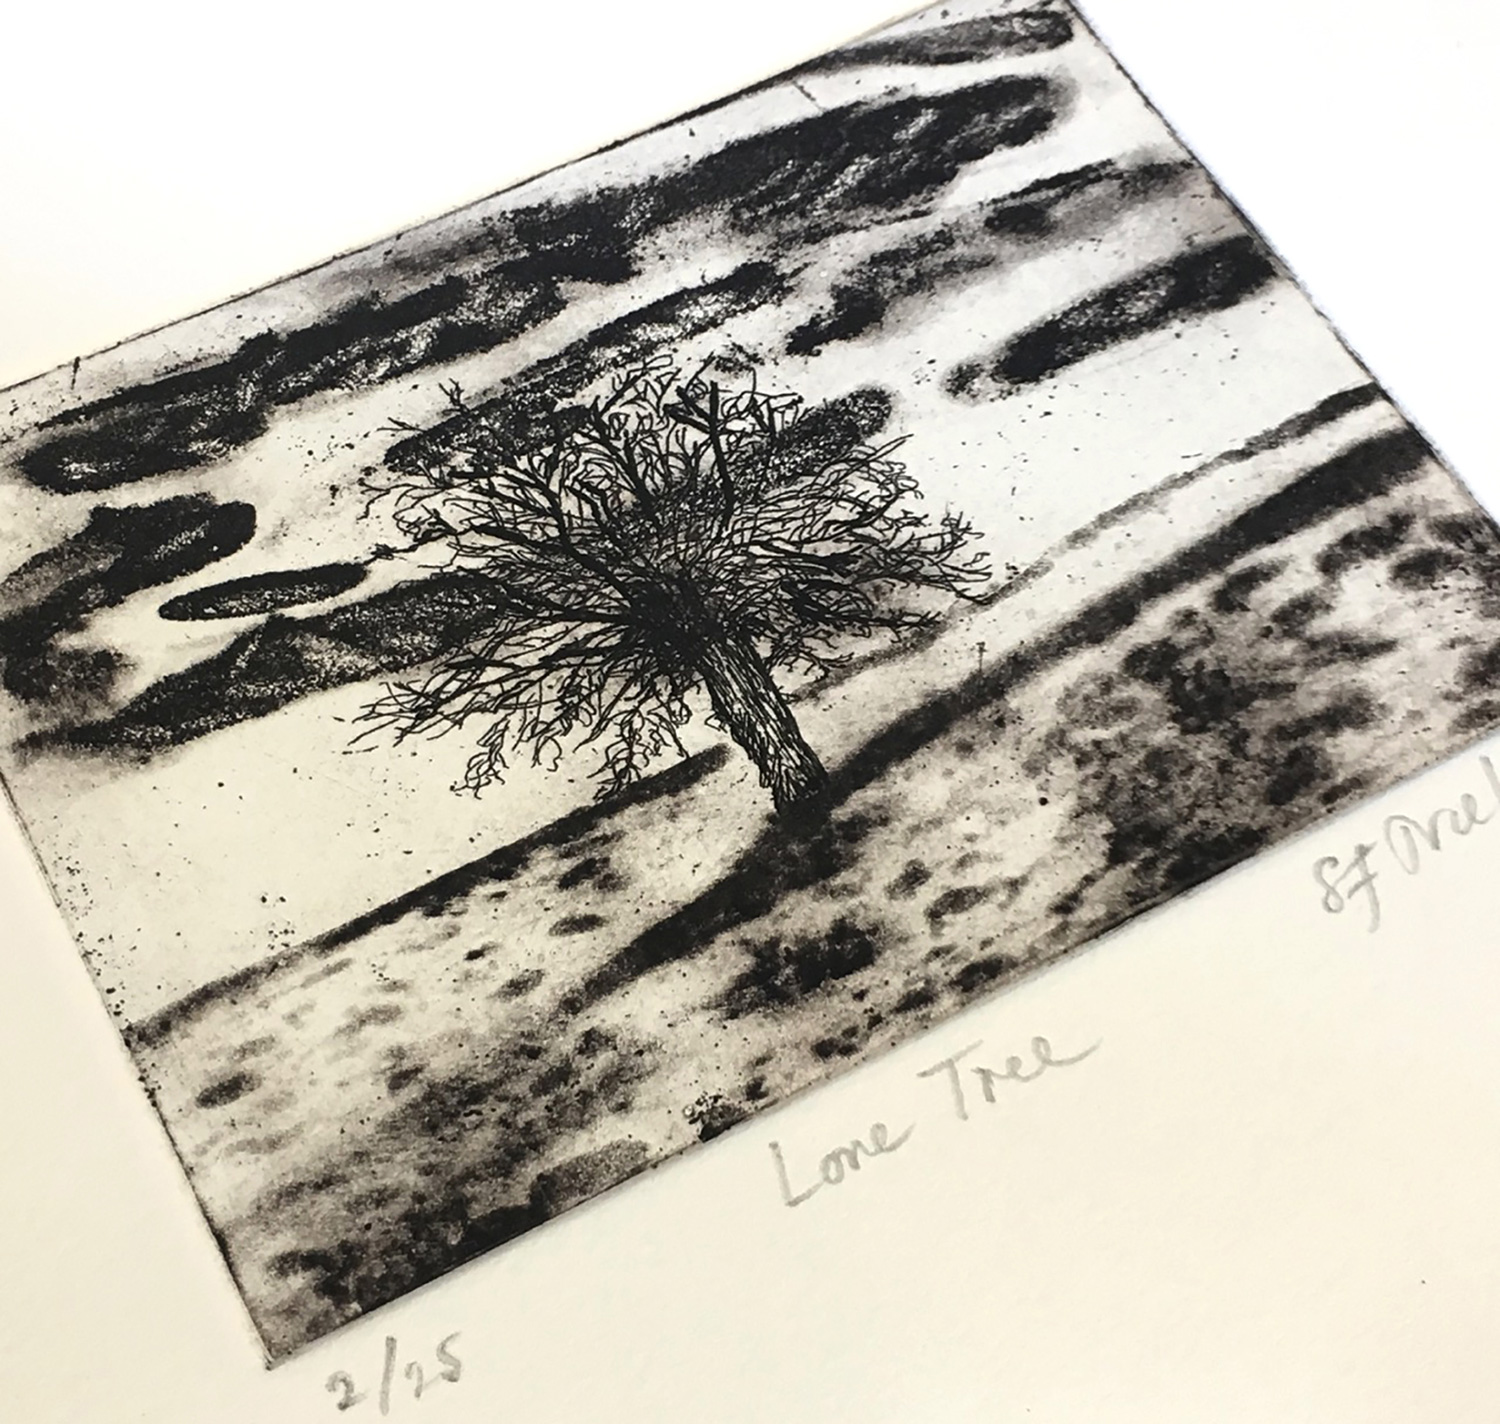 Lone Tree -  aquatint/drypoint